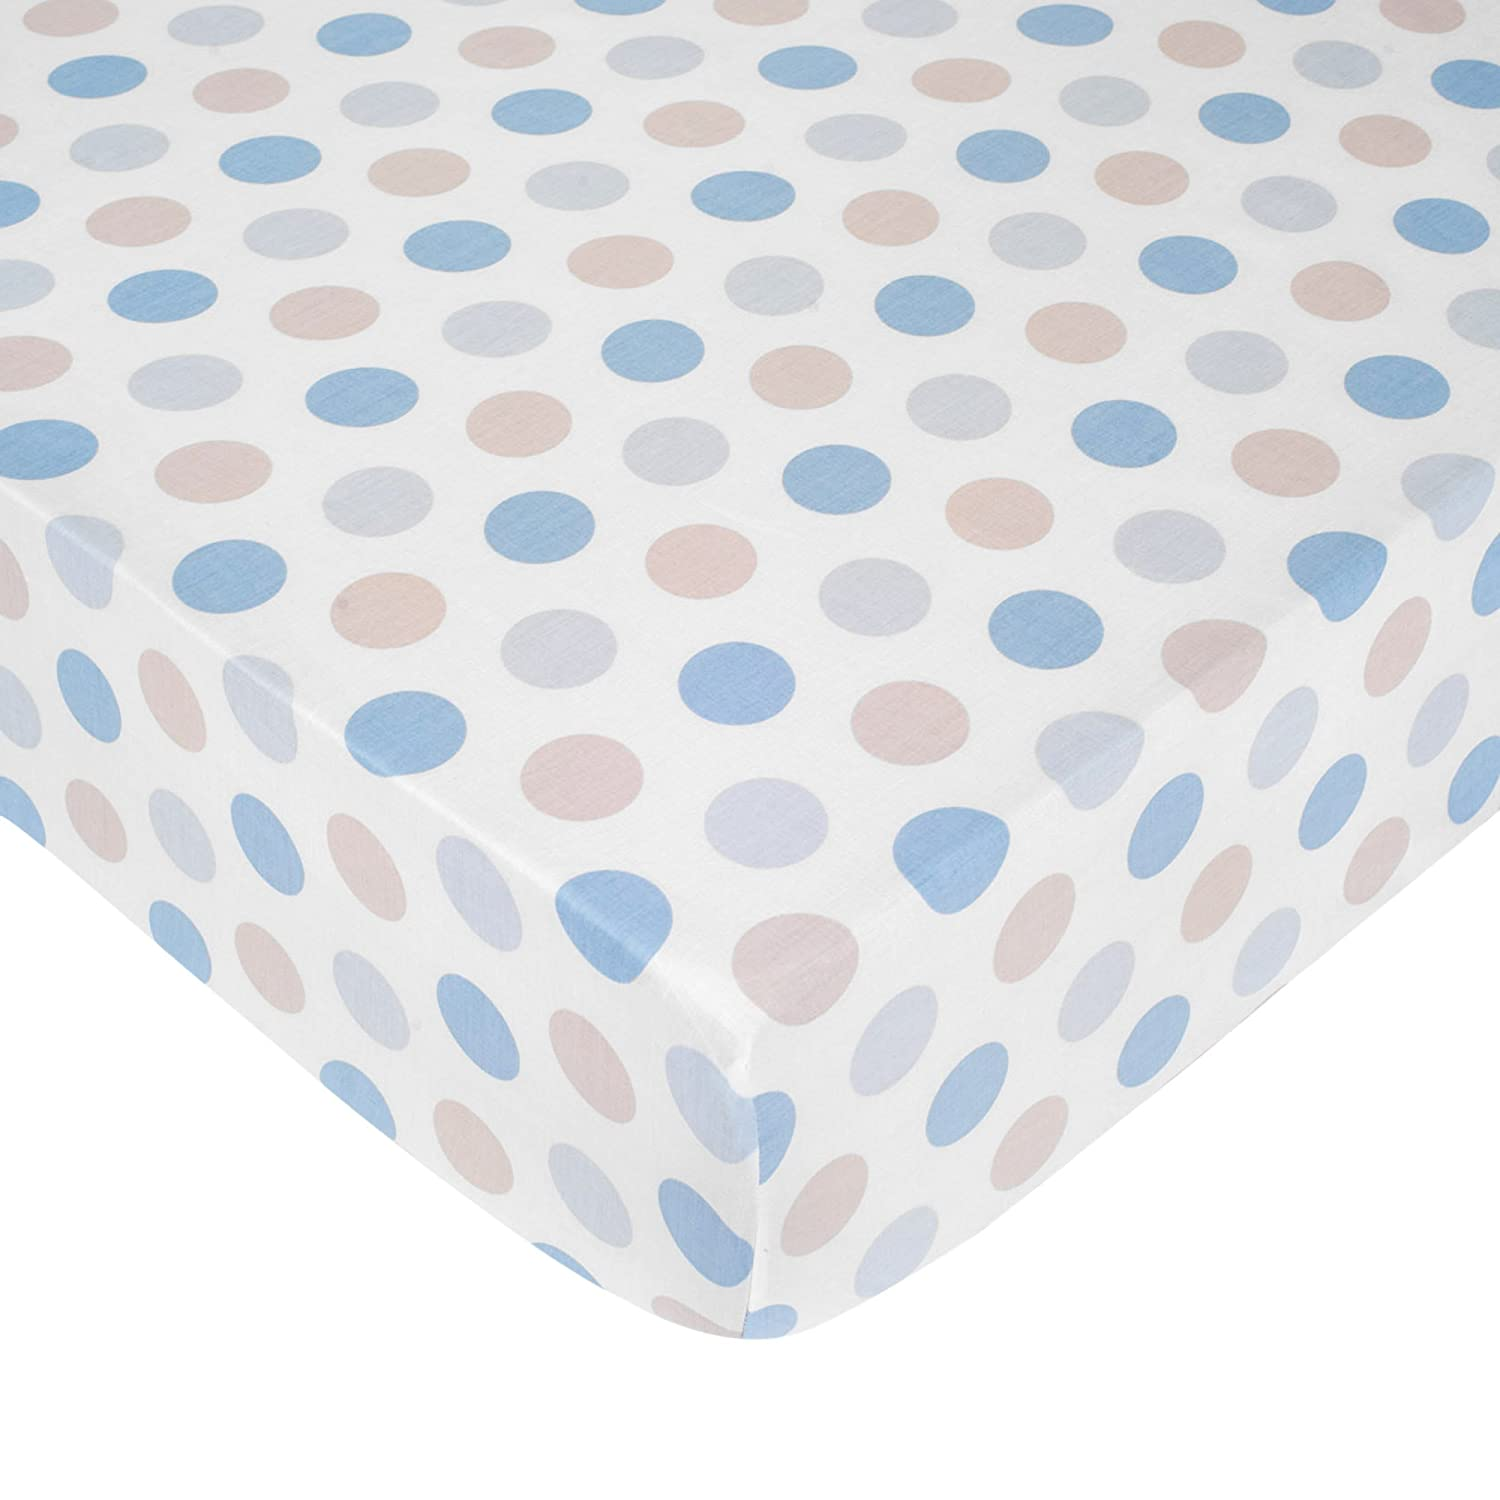 Carter's Crib Fitted Sheet, Boy Dots (Discontinued by Manufacturer) by Carter's   B00M1HAUK0